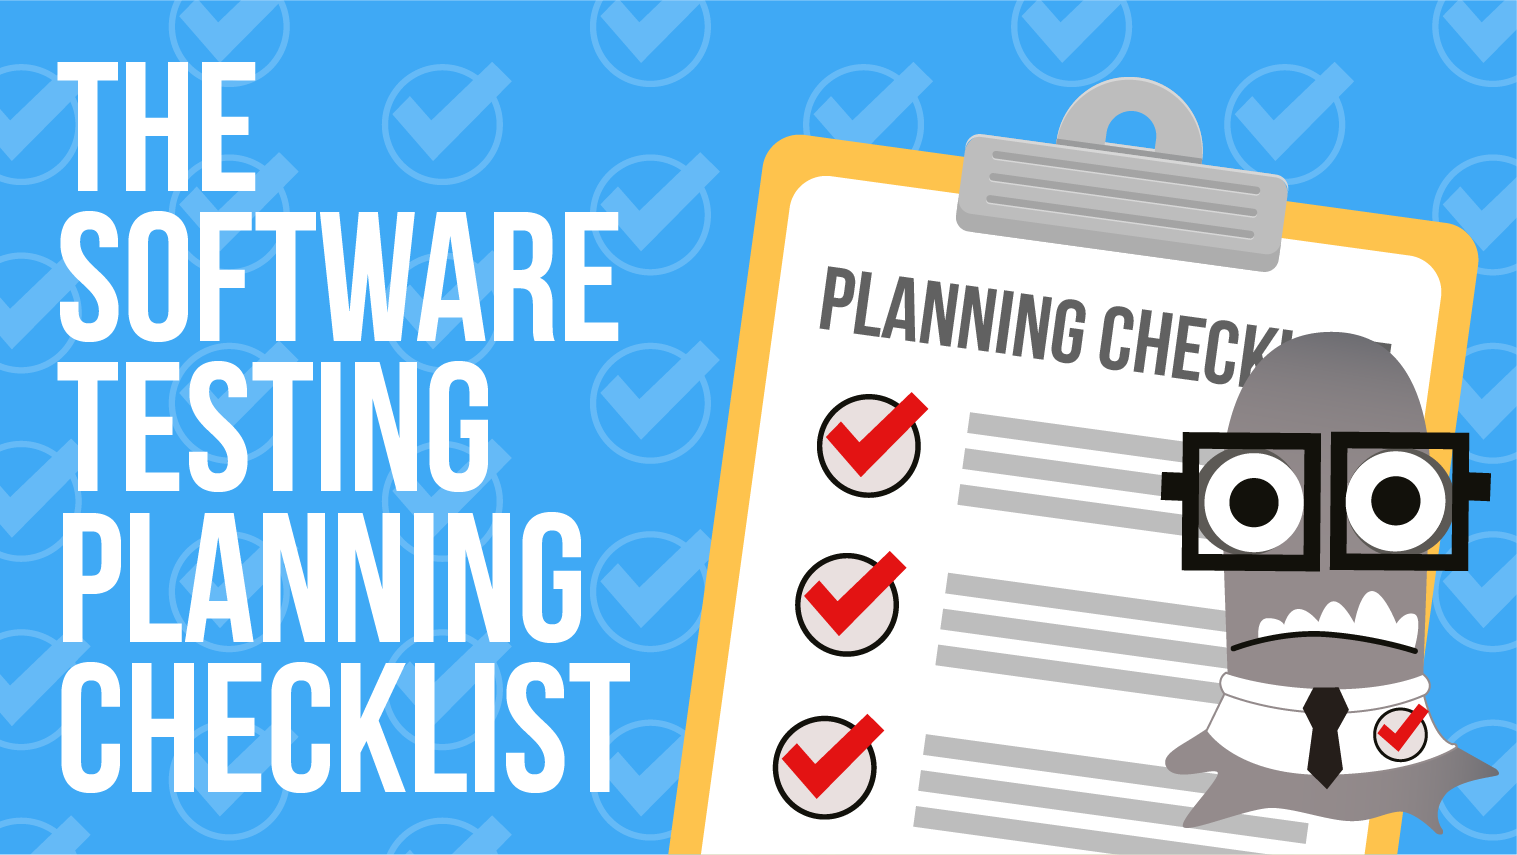 The Software Testing Planning Checklist